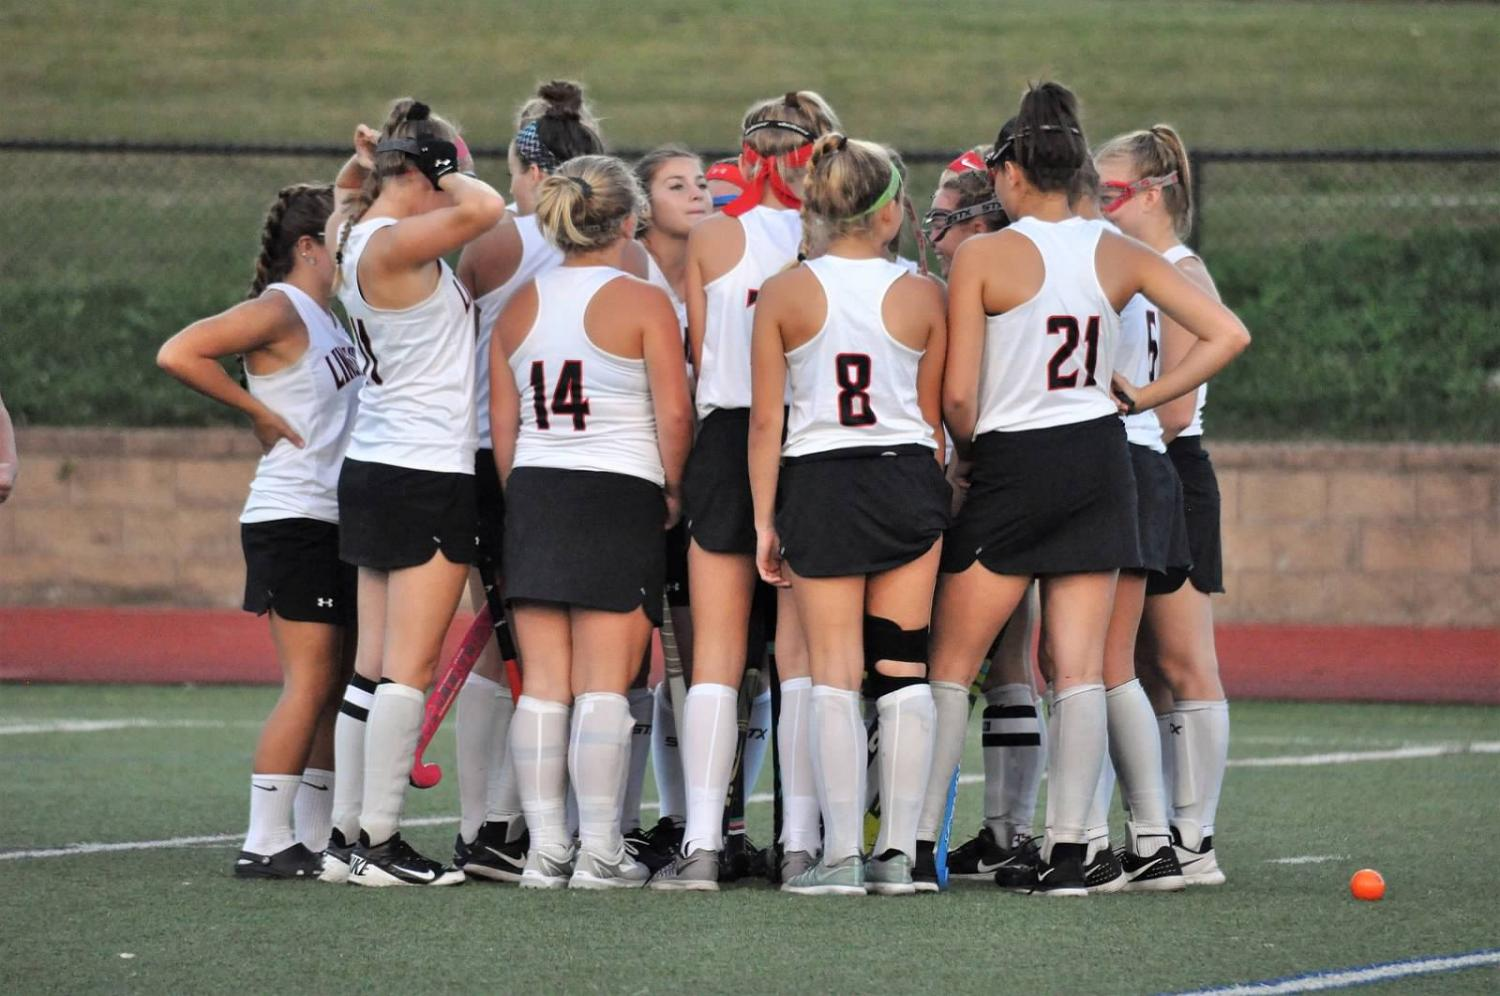 Varsity field hockey gathers together before a game.